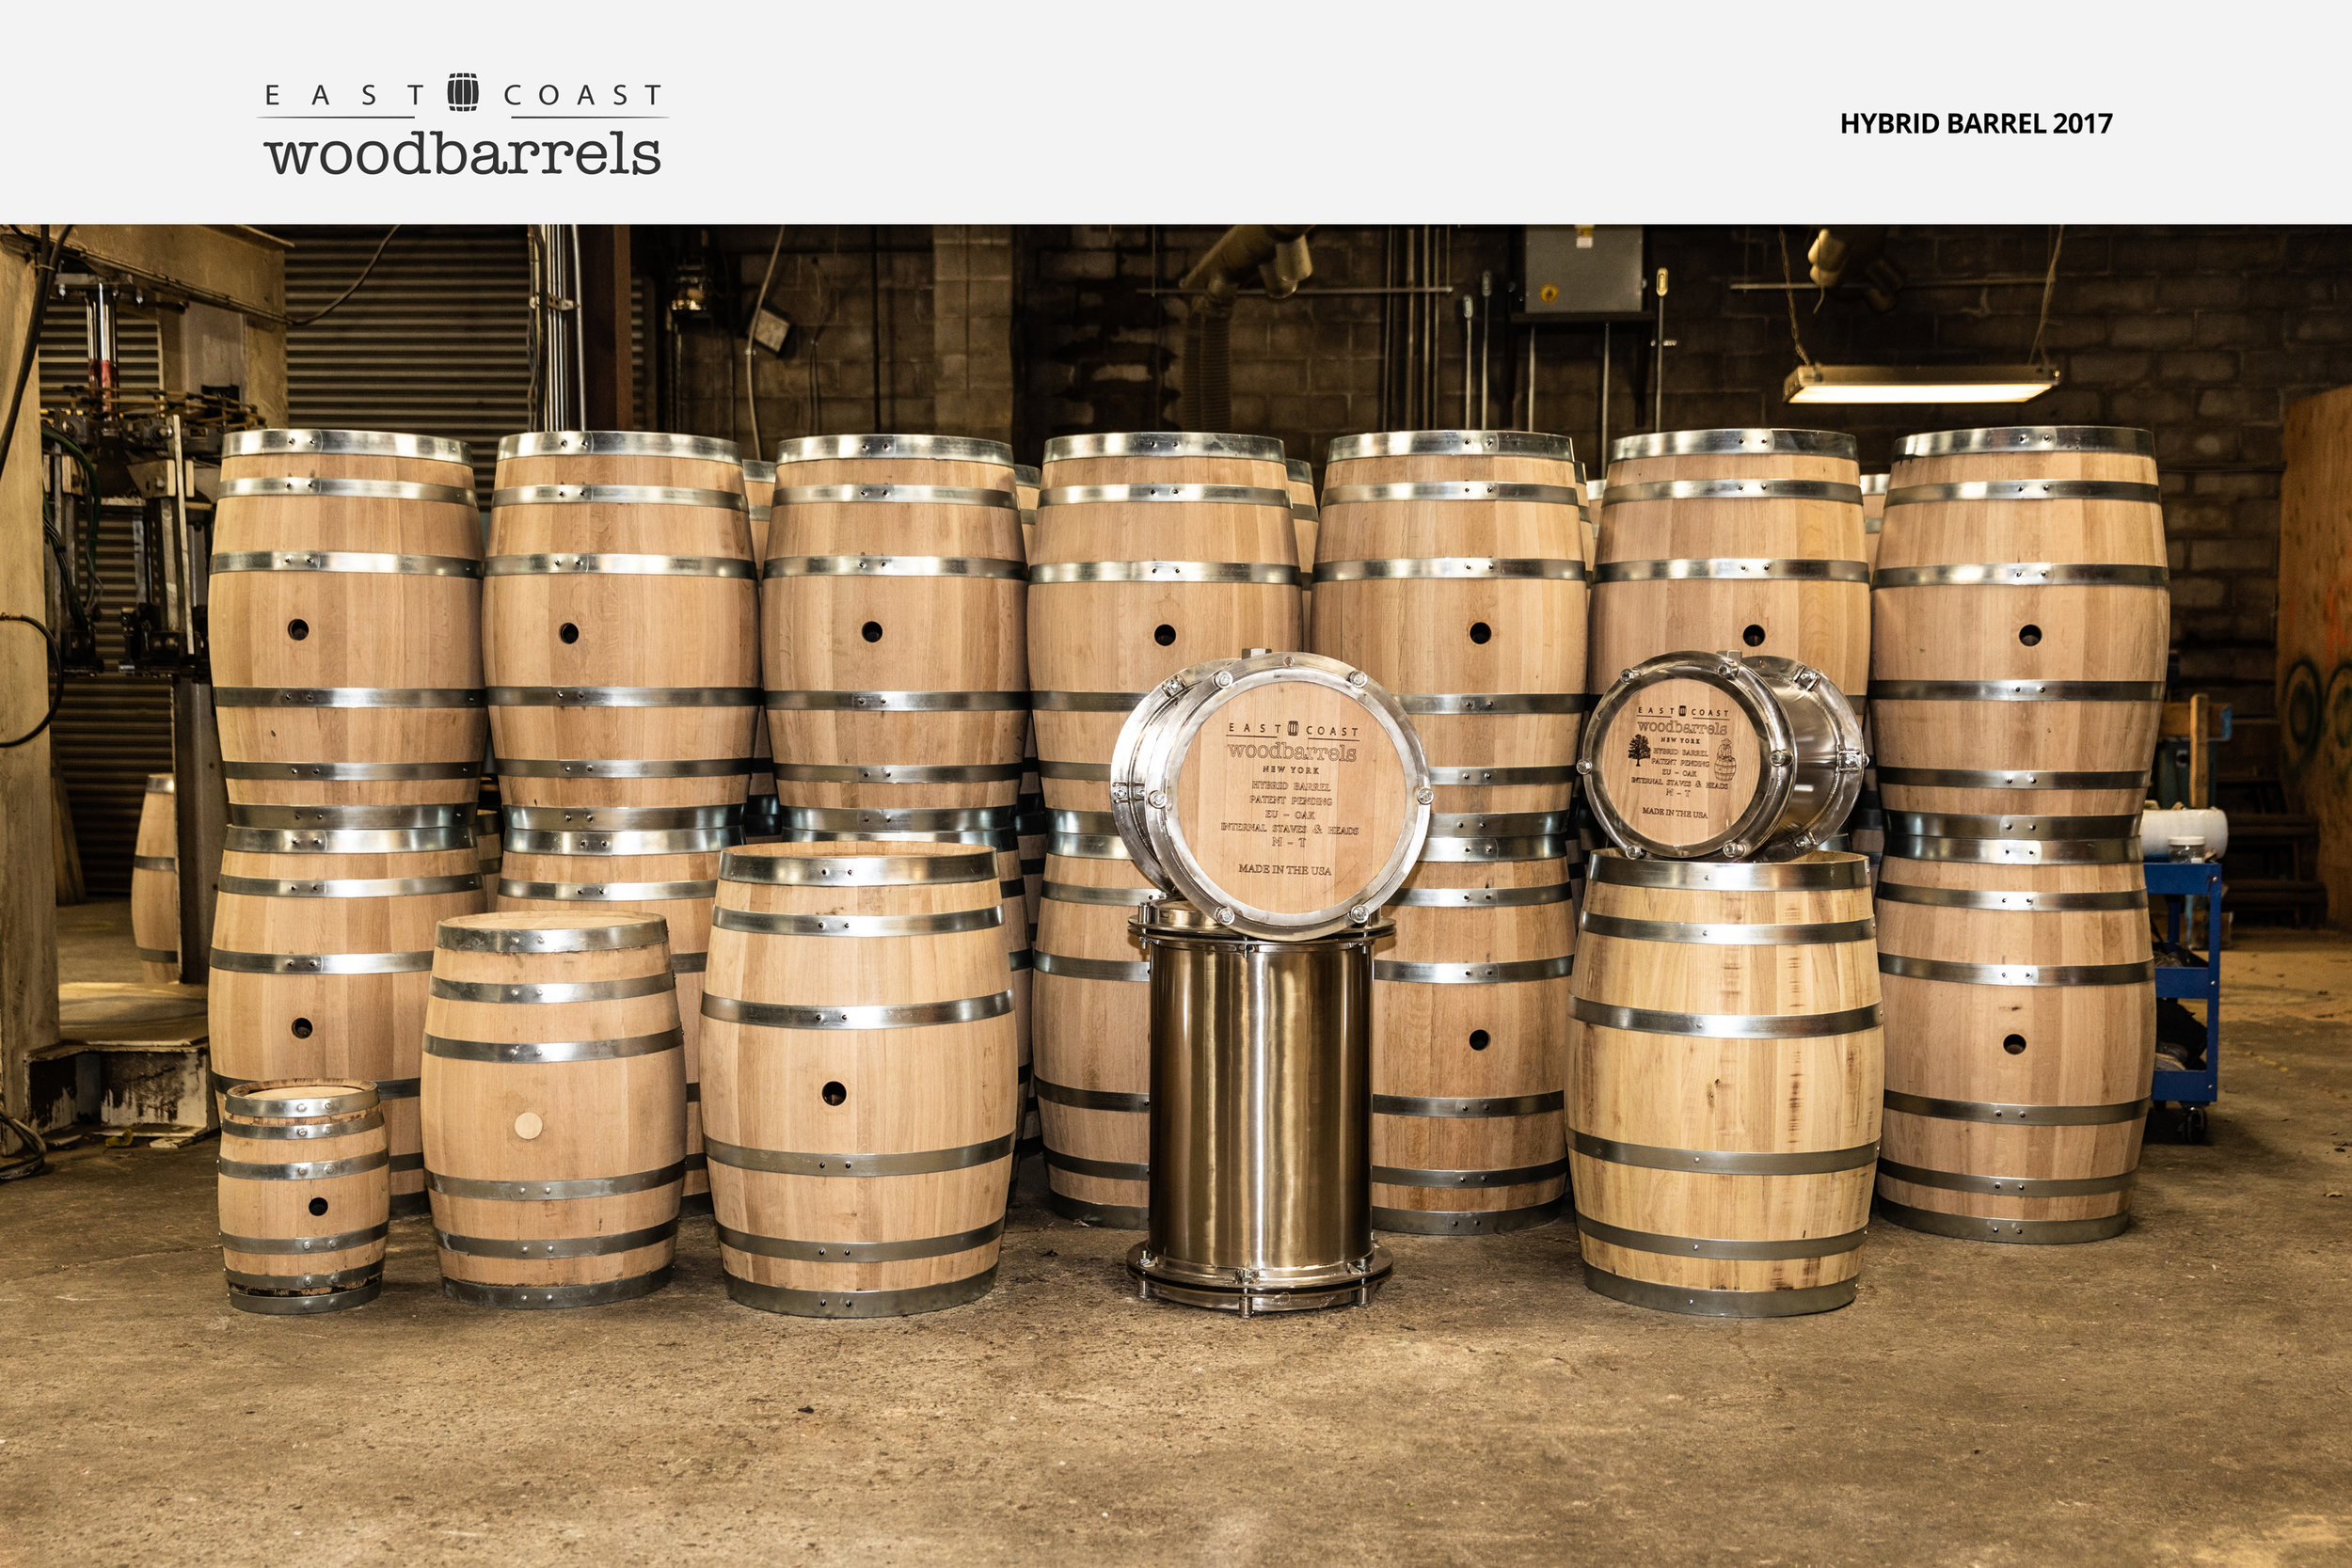 EAST-COAST-WOOD-BARRELS-WEB-IMAGES-2.jpg